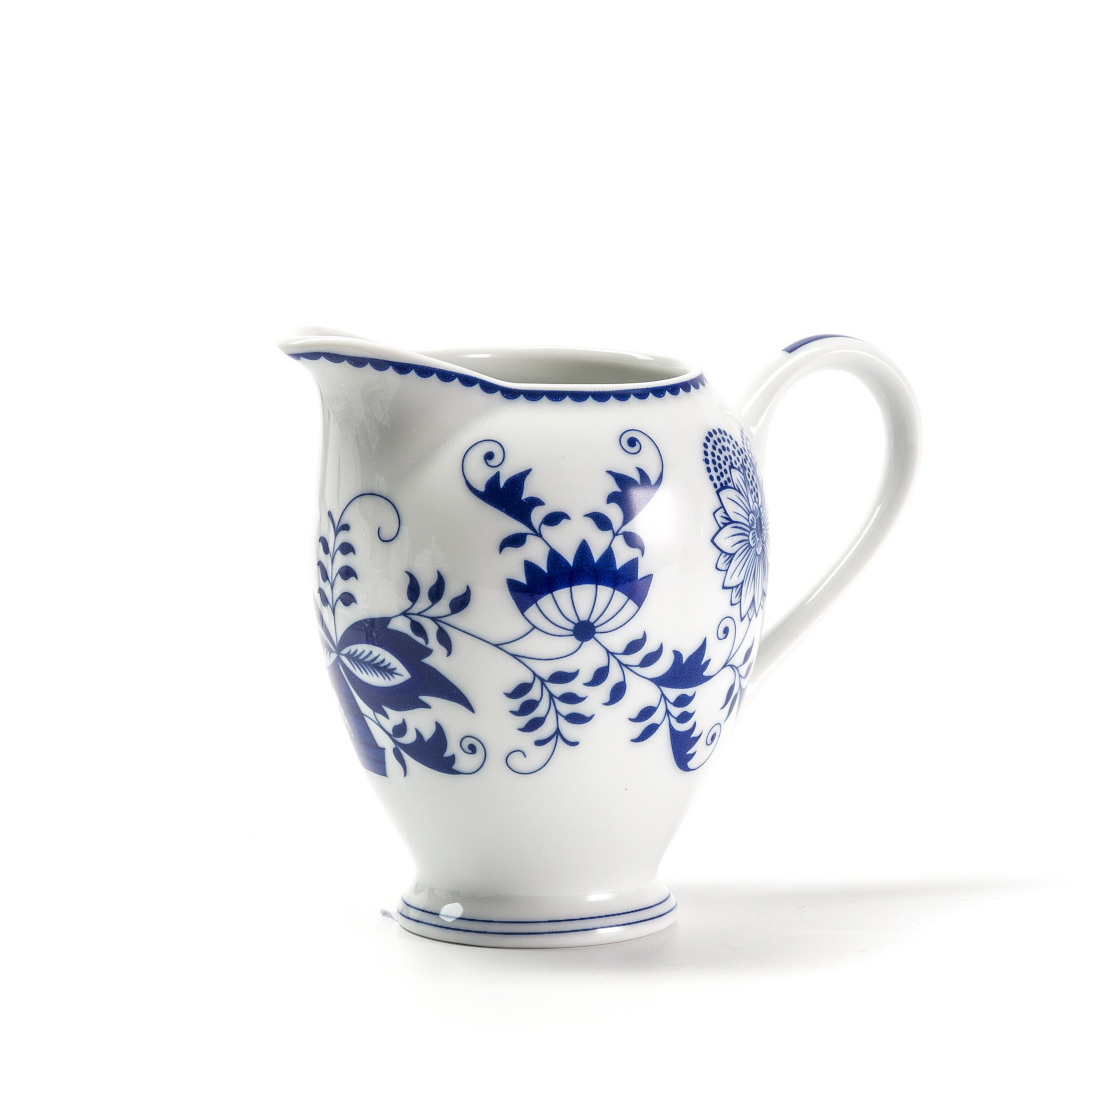 Сливочник Onion blue, 250 мл, Фарфор, Tunisian Porcelain, Onion Blue